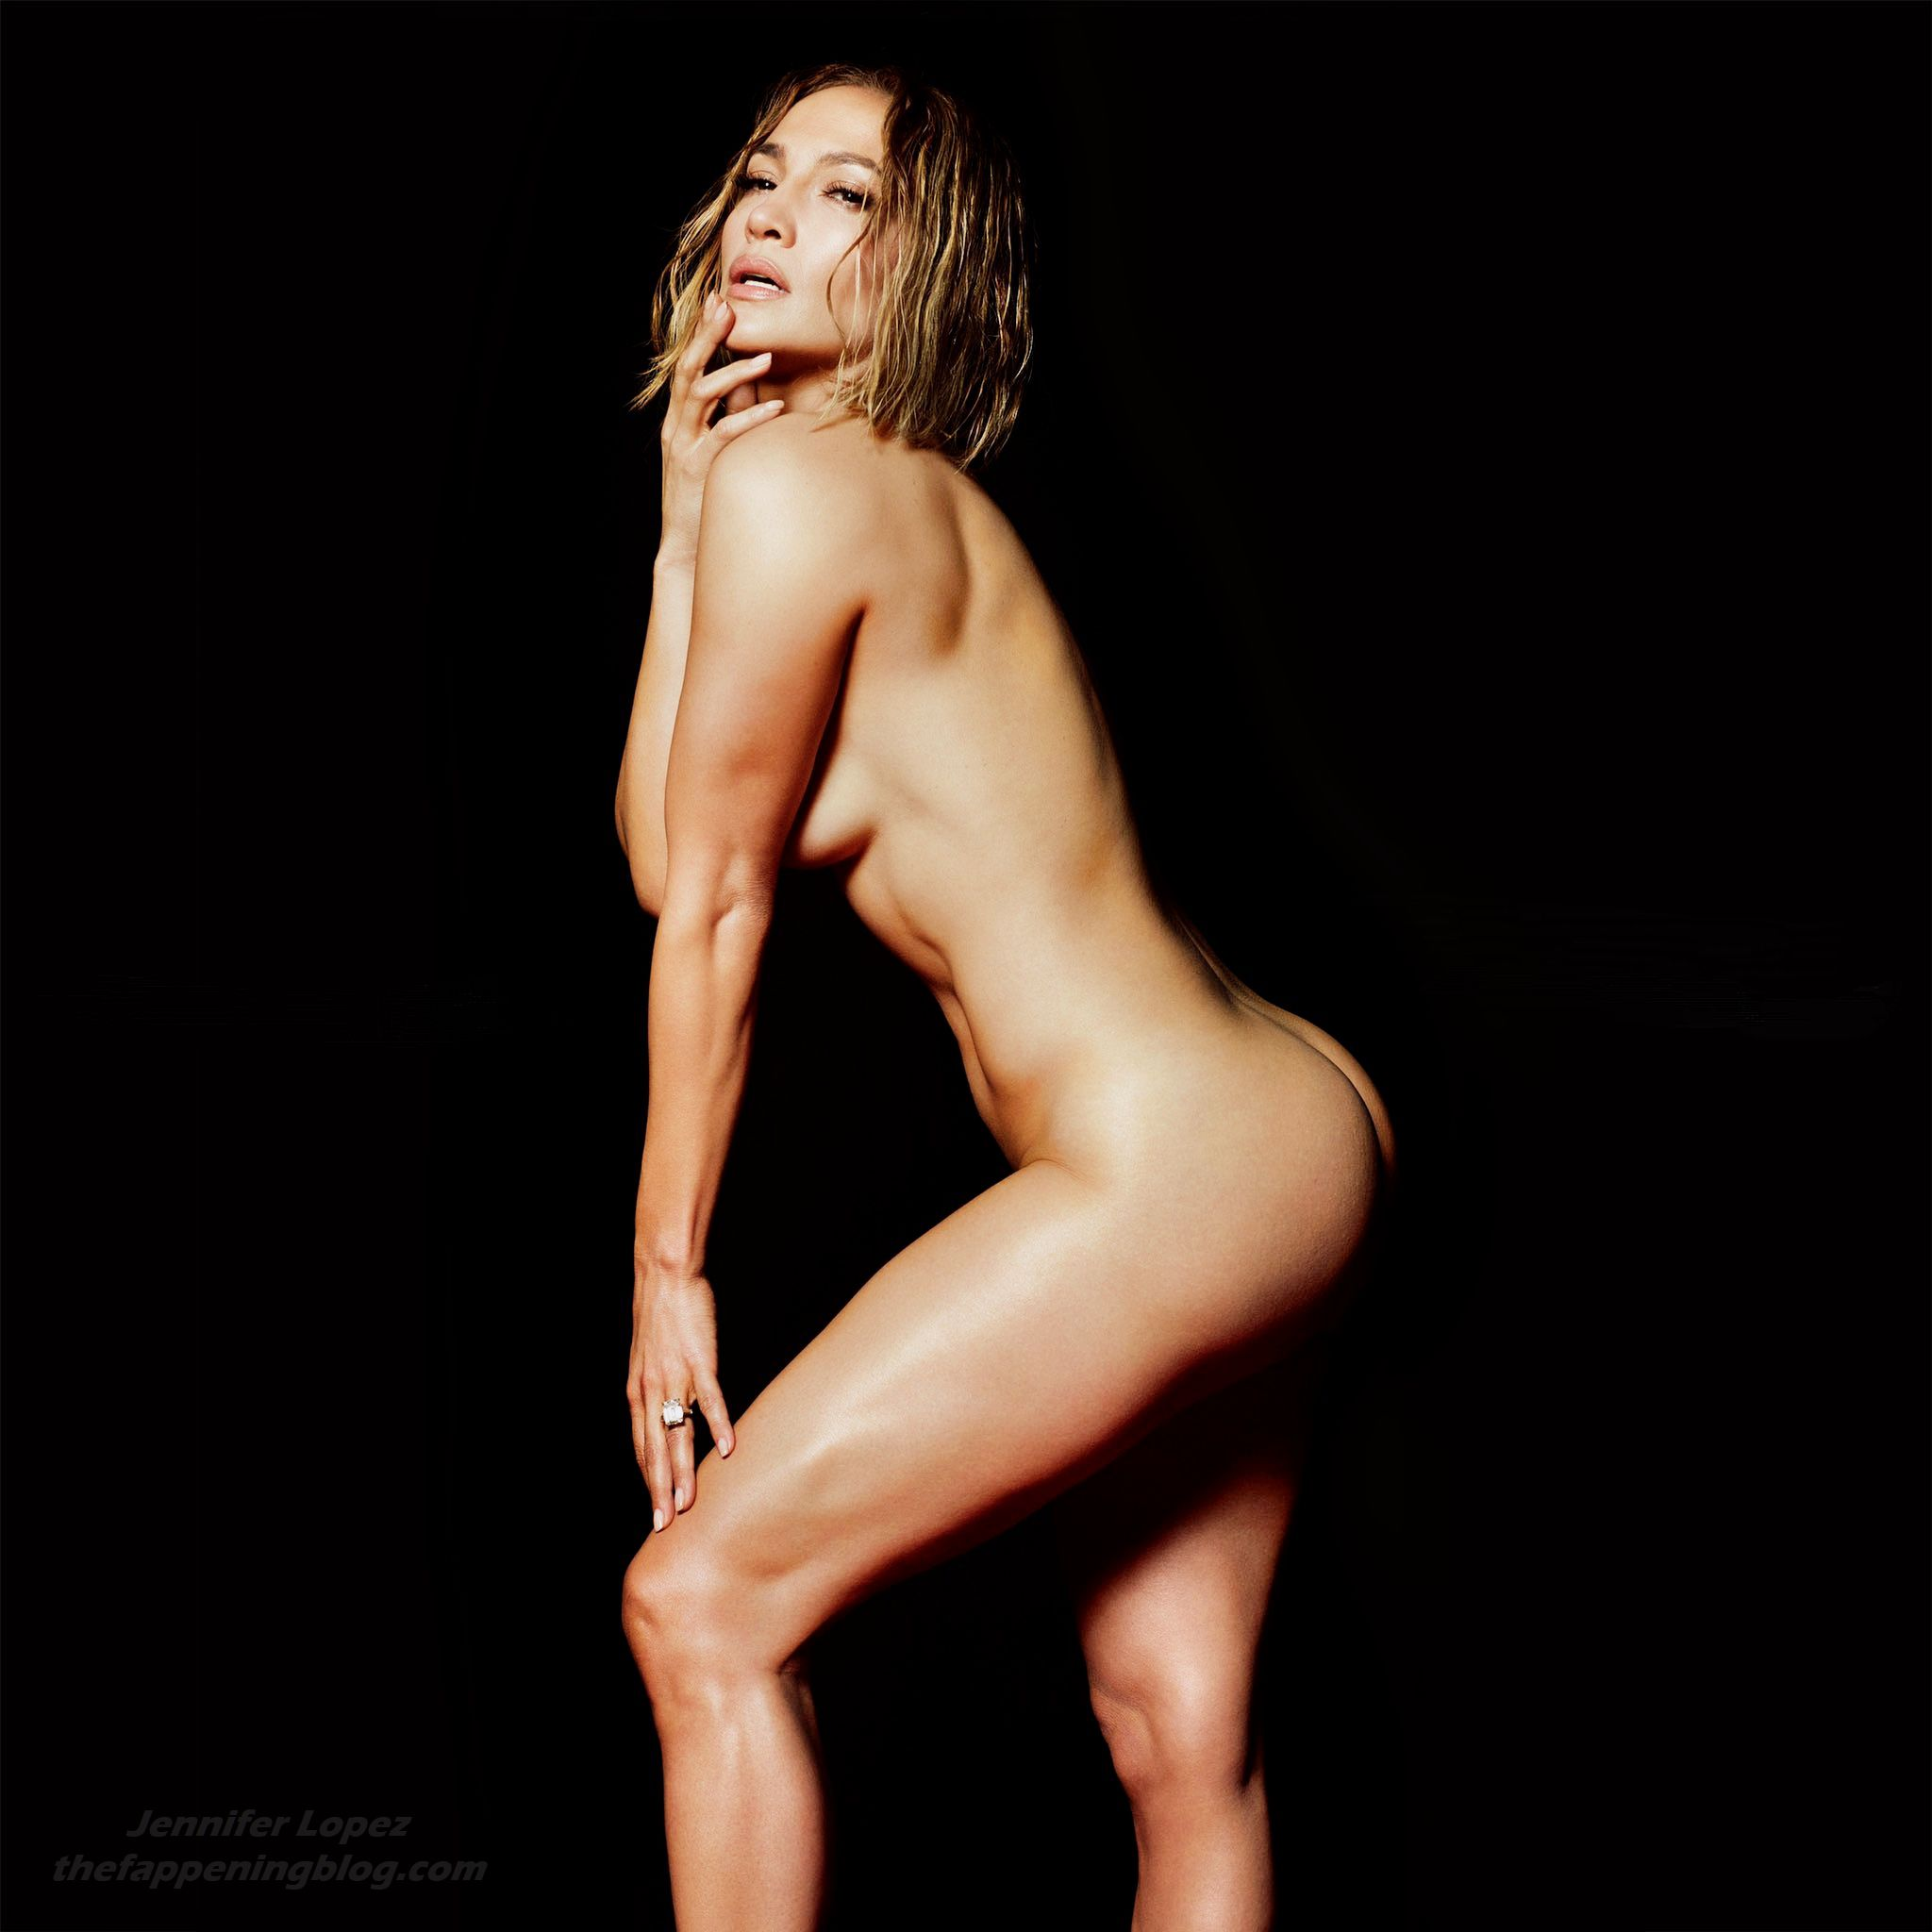 Jennifer-Lopez-Nude-The-Fappening-Blog-2.jpg